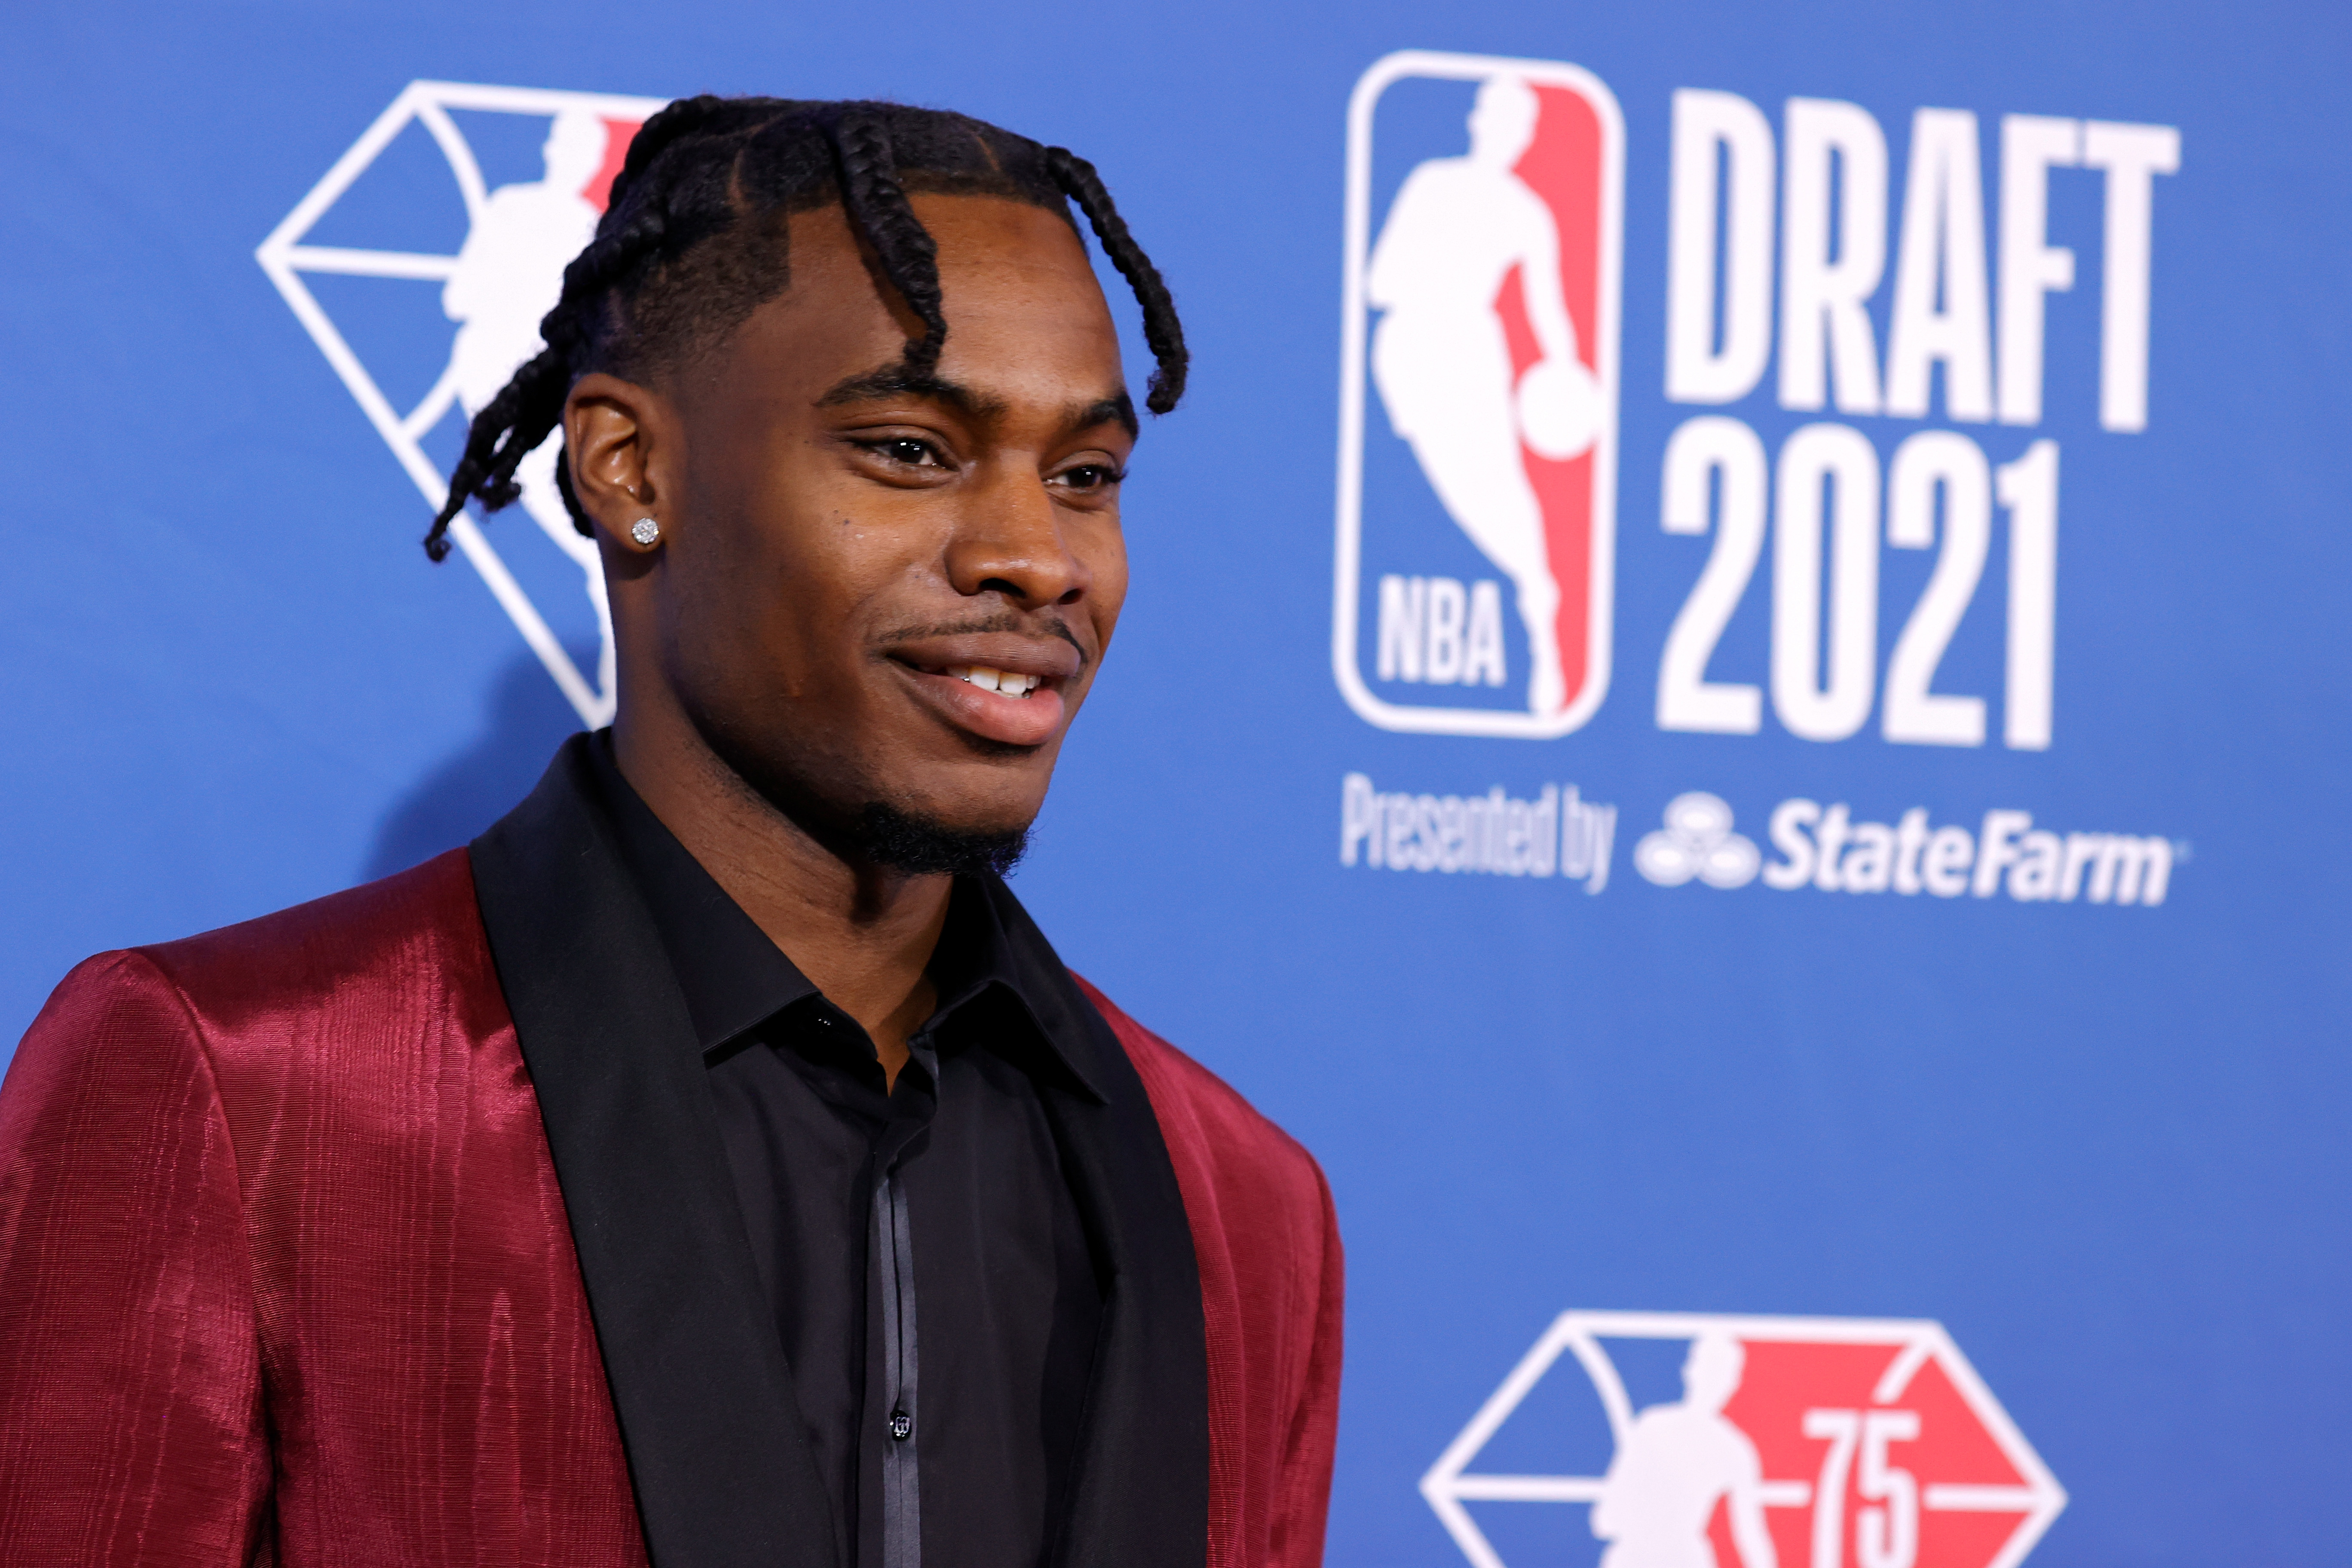 Davion Mitchell poses for photos on the red carpet during the 2021 NBA Draft at the Barclays Center on July 29, 2021 in New York City.